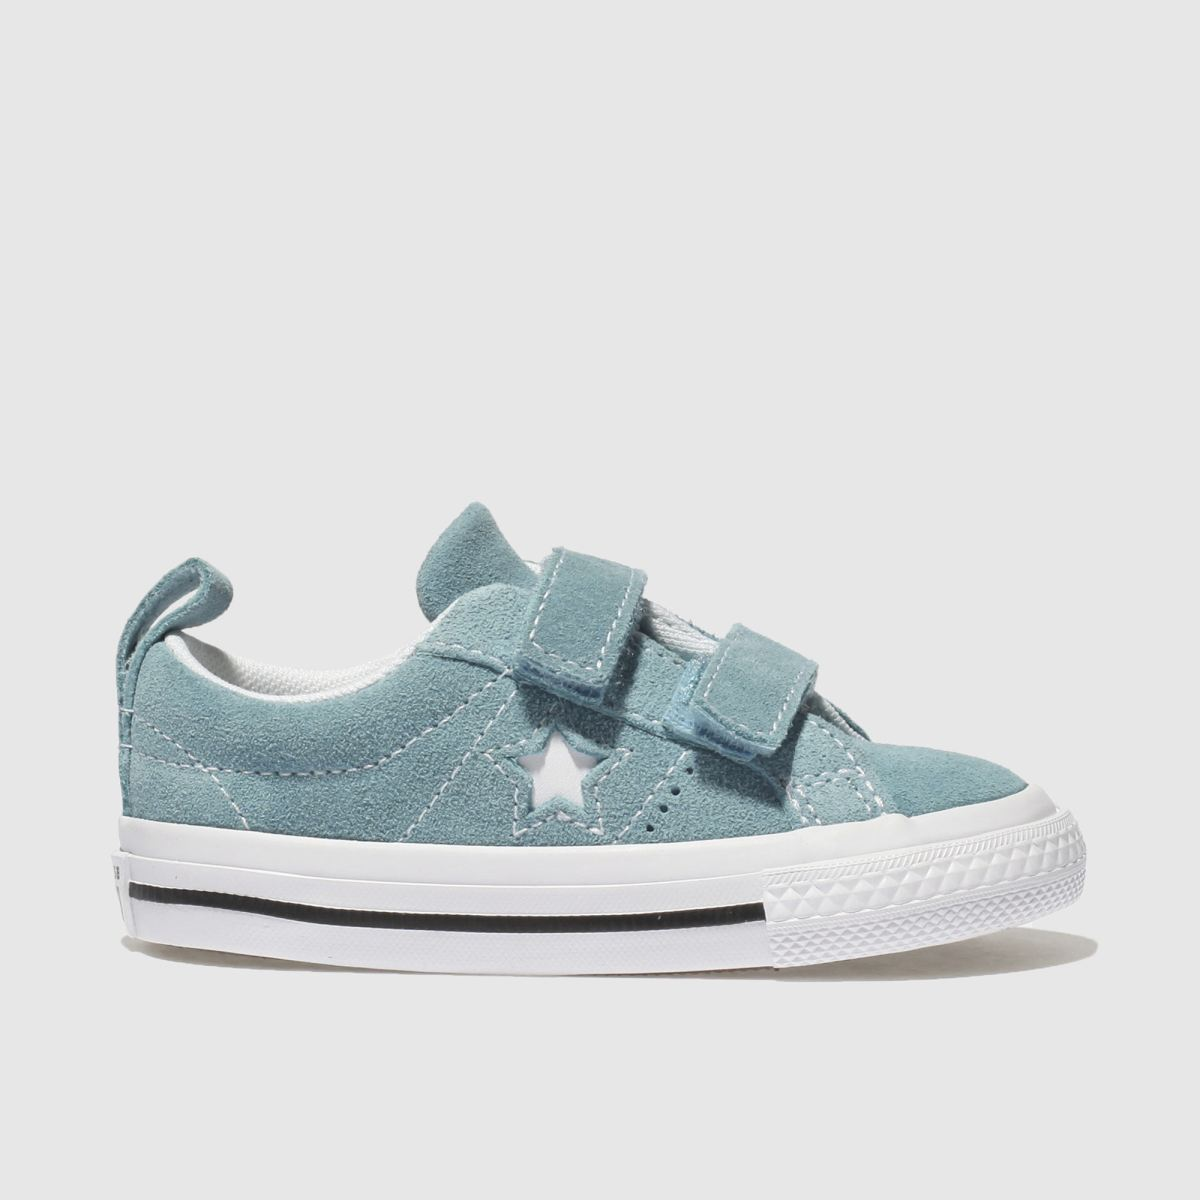 Converse Blue One Star Vintage Suede Trainers Toddler